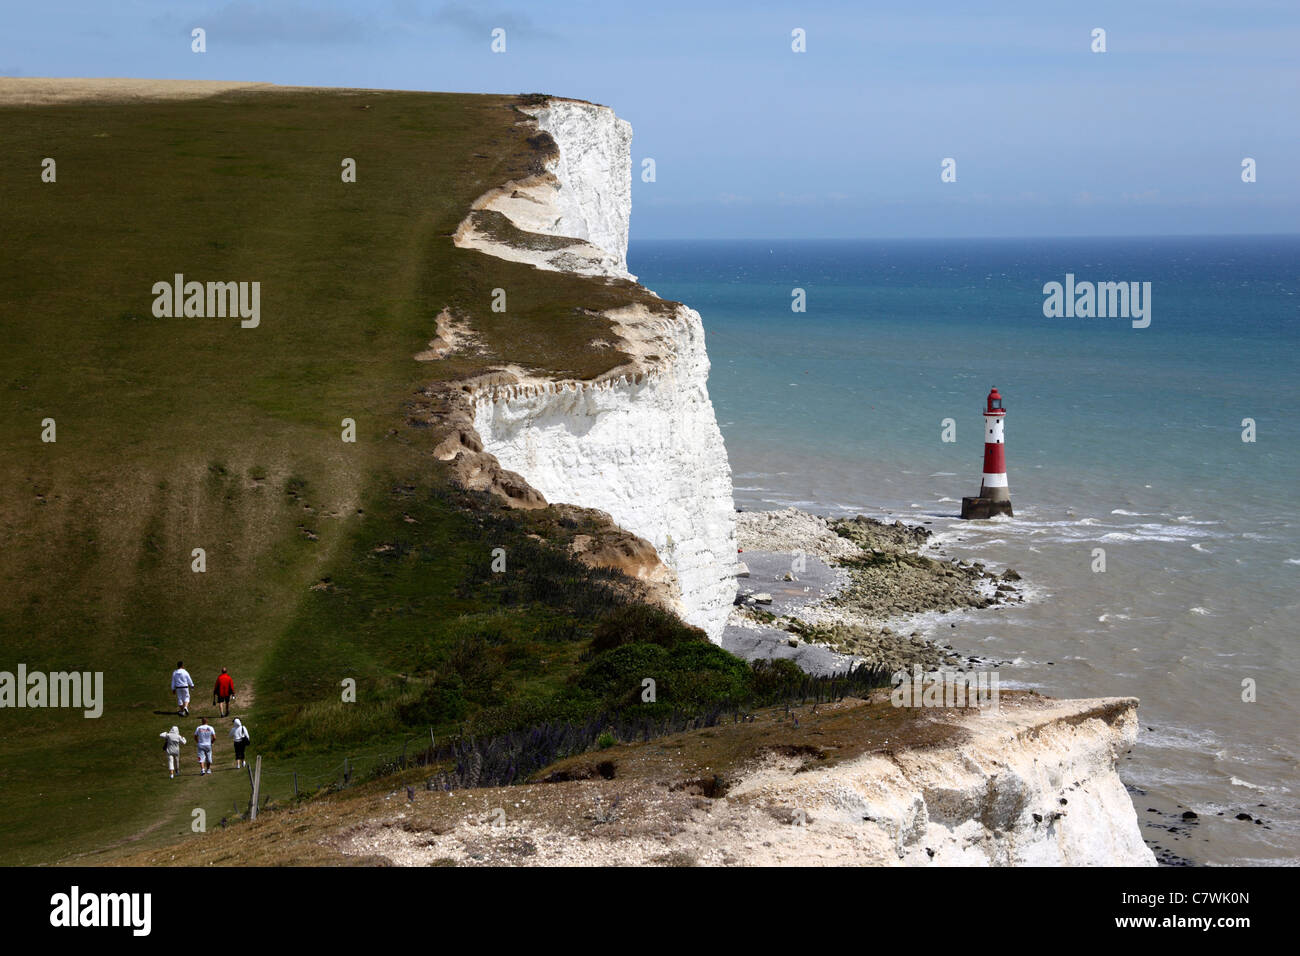 Hikers walking along South Downs Way coast path, Beachy Head lighthouse in background , near Eastbourne, East Sussex Stock Photo